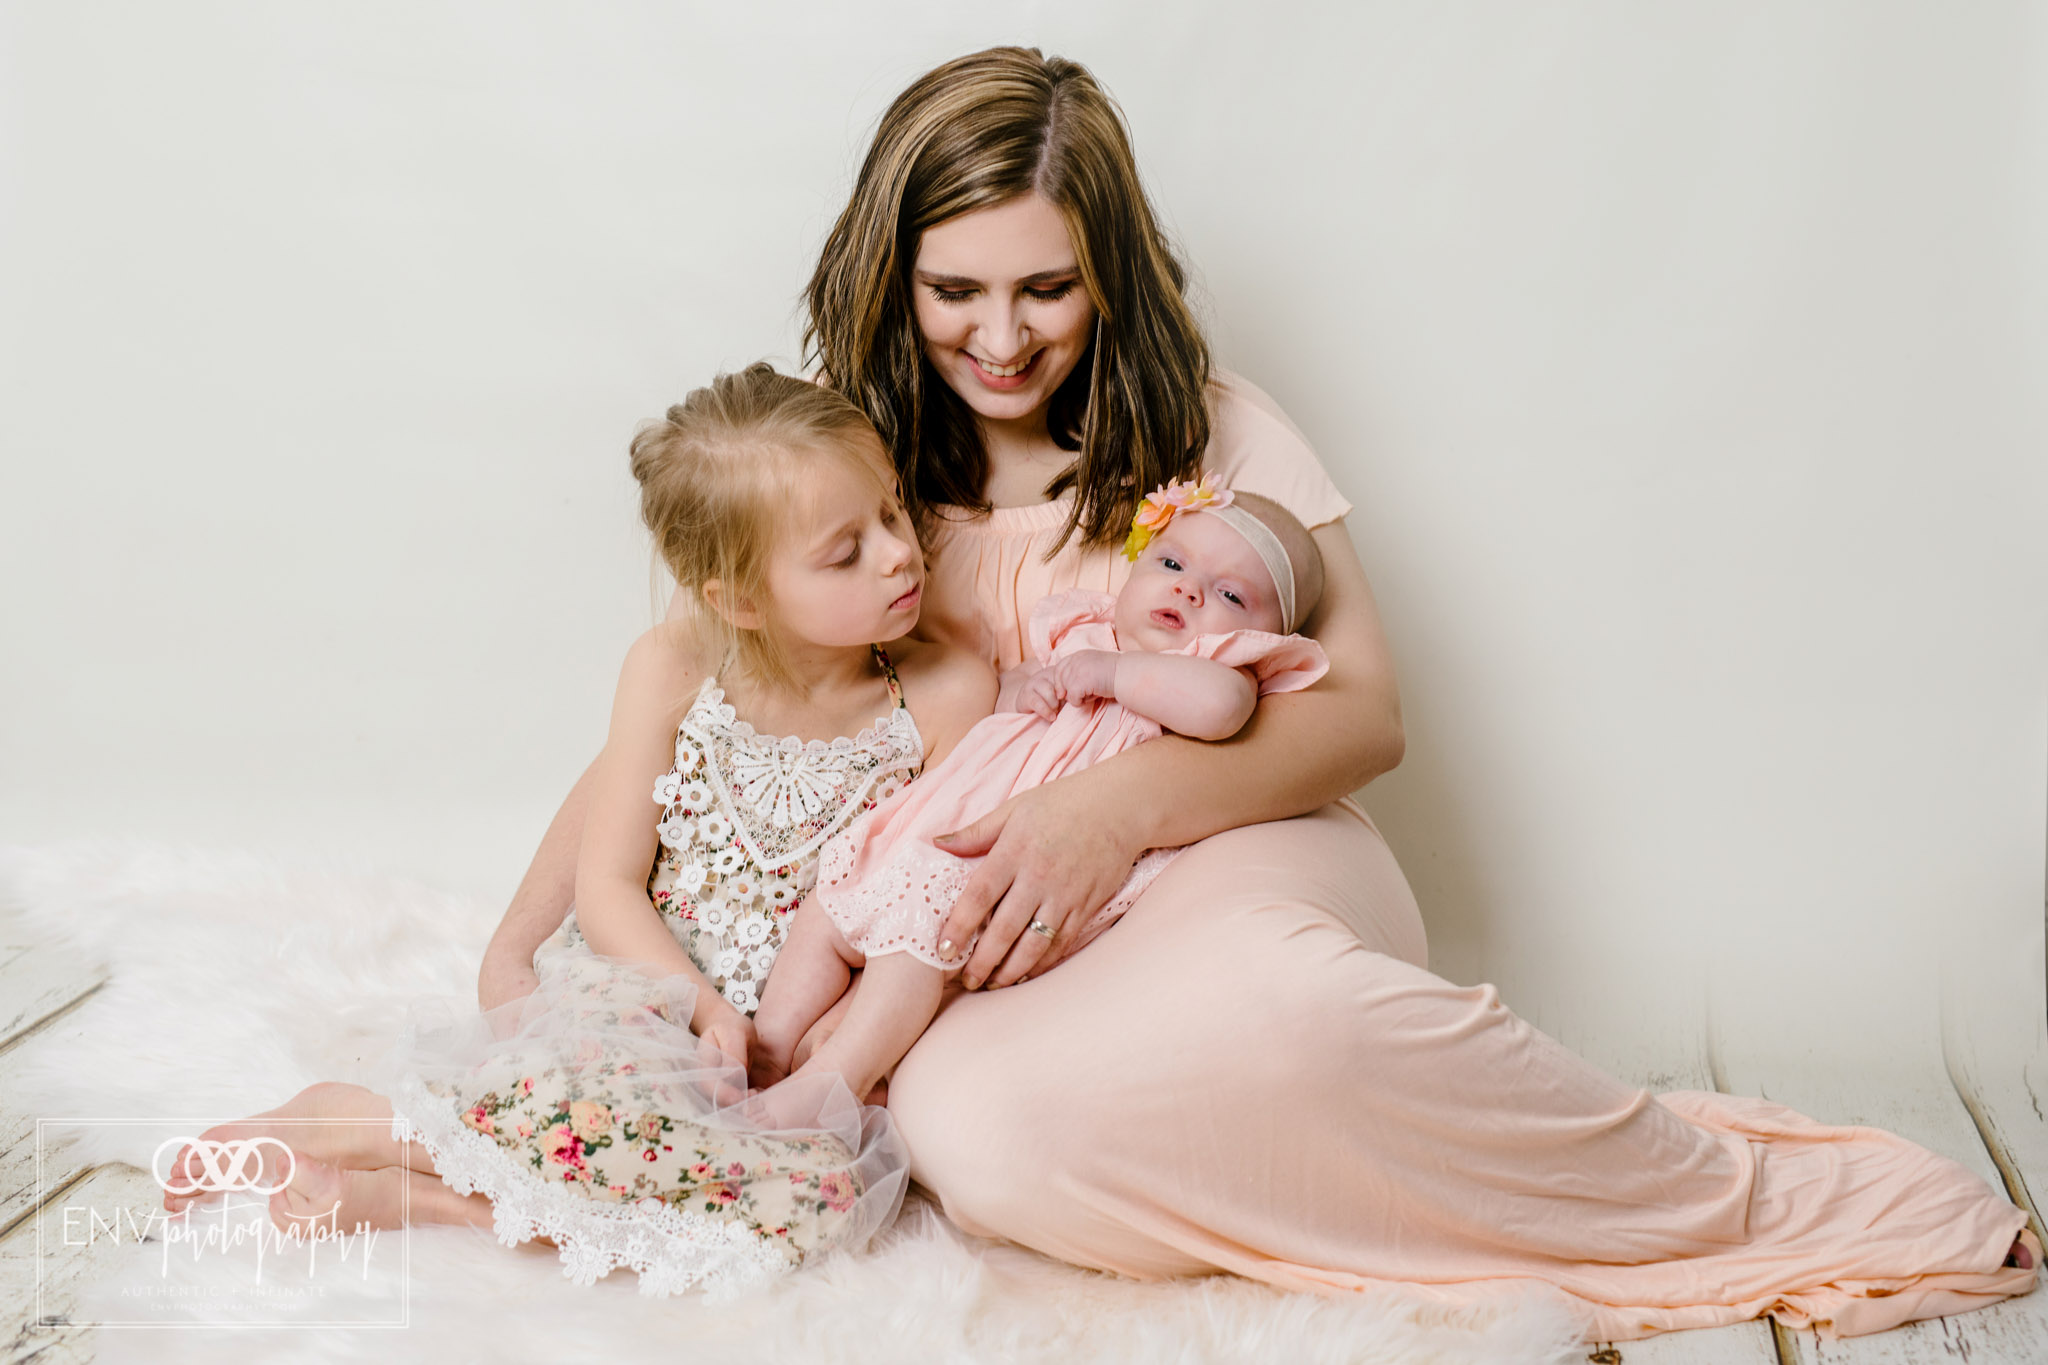 Mount Vernon Columbus Ohio Family Studio Photography (19).jpg